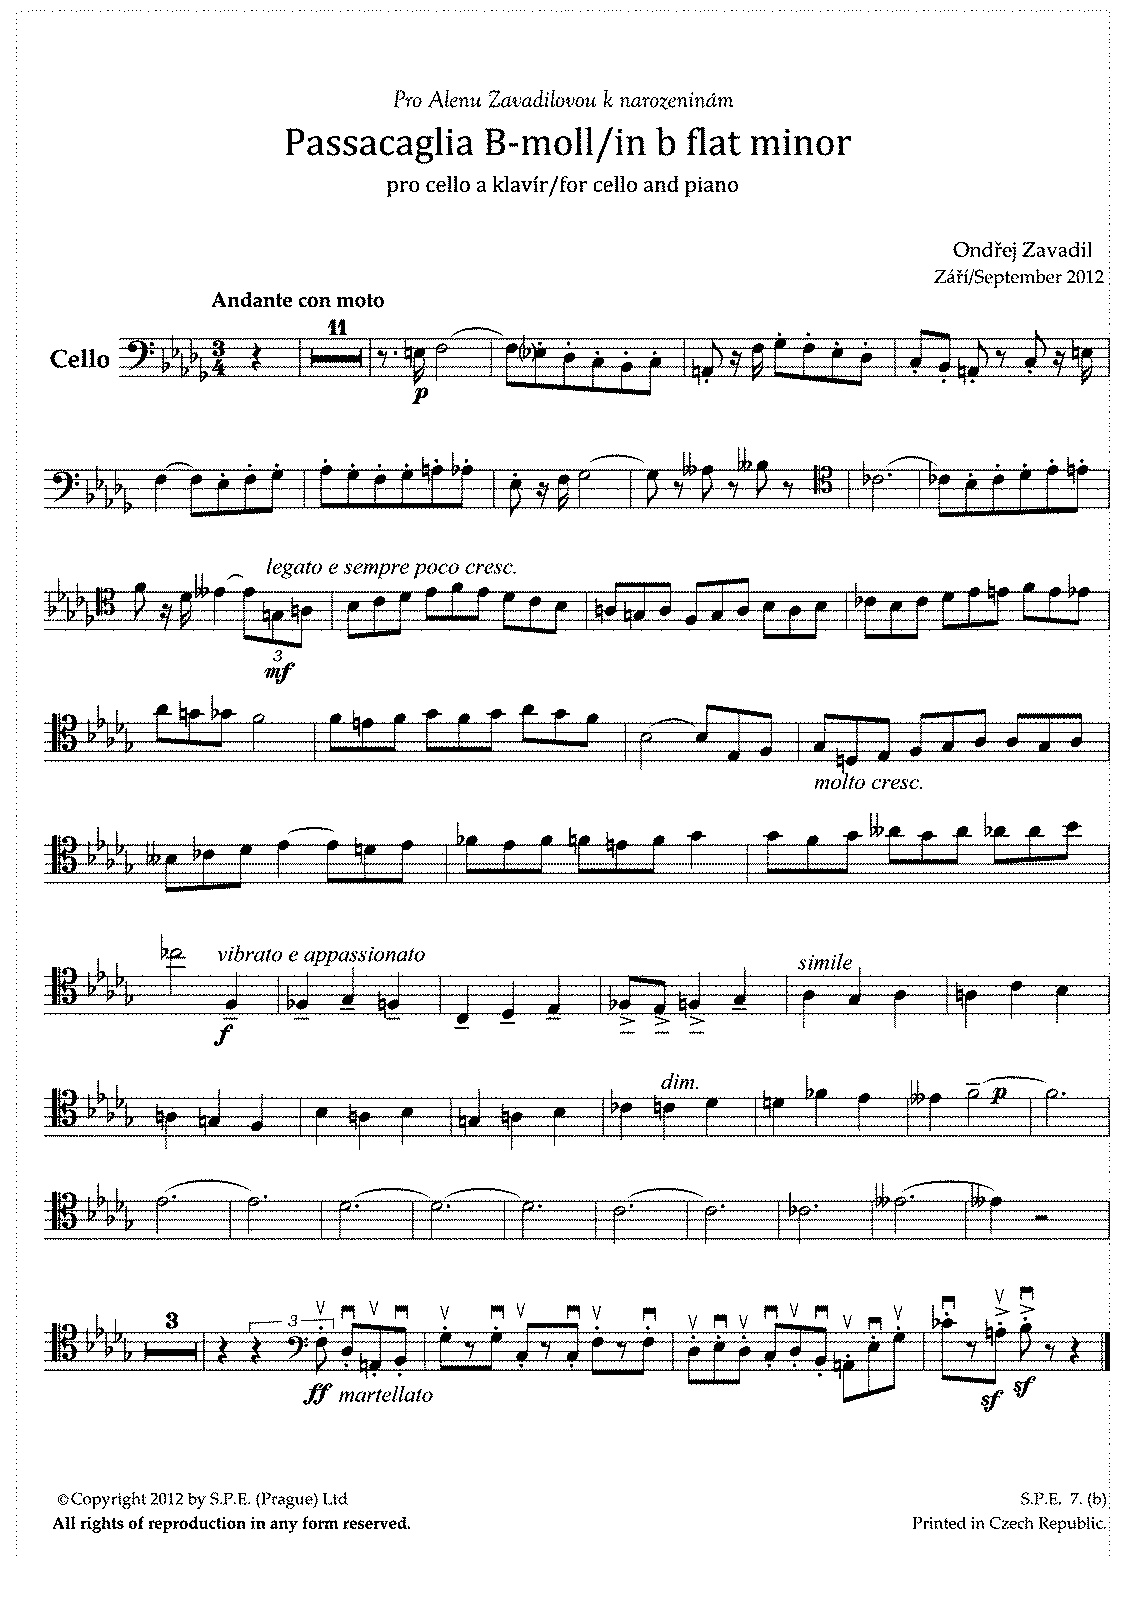 PMLP407022-Passacaglia in b flat cello part.pdf